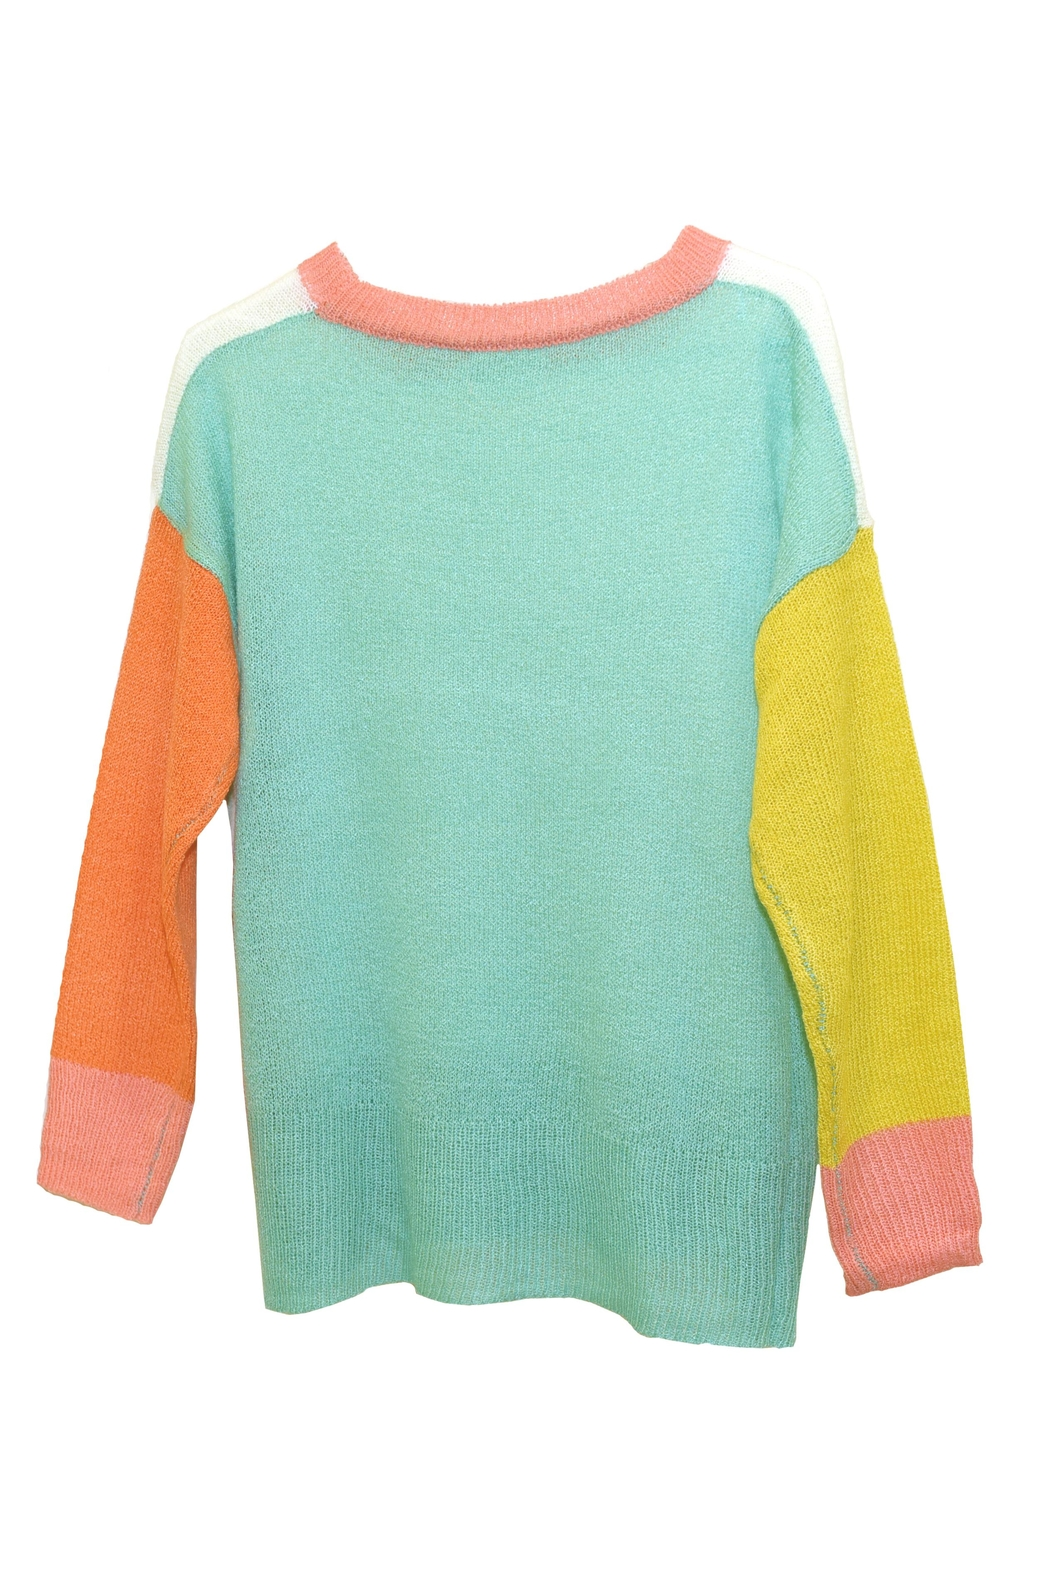 Dreamers Color-Block Knit Sweater - Front Full Image